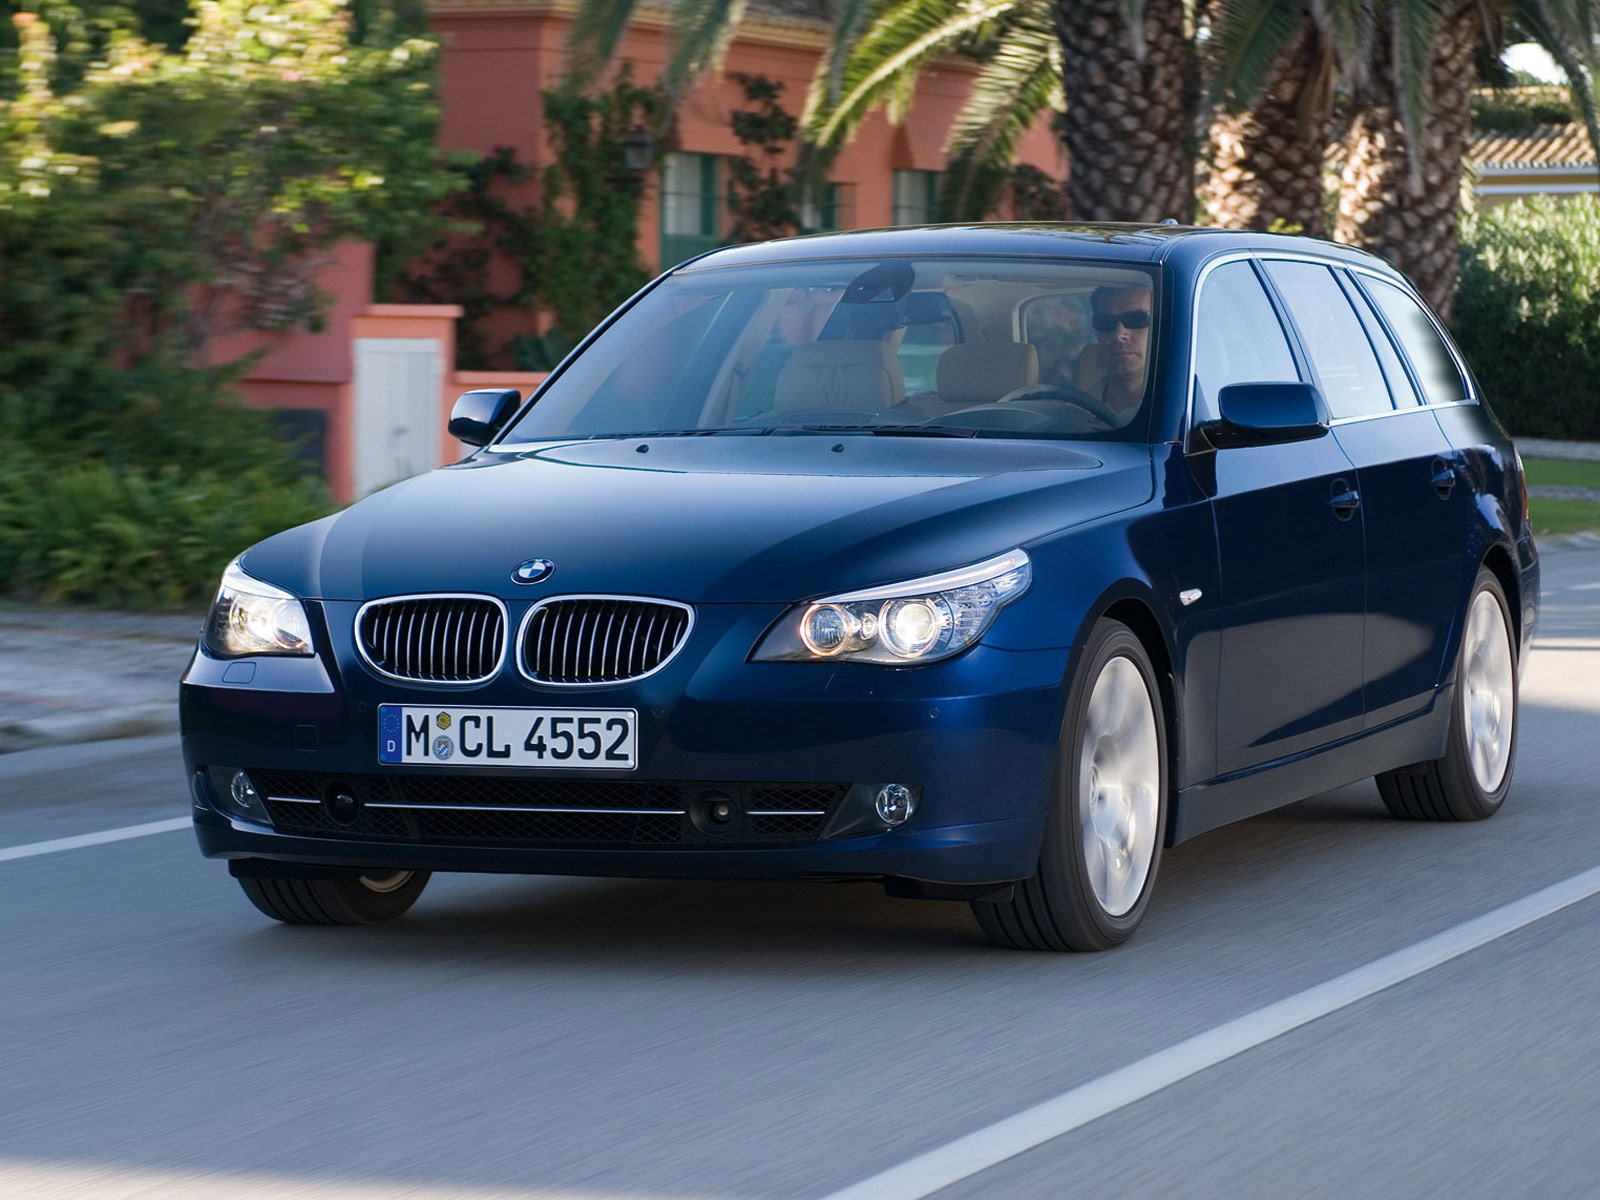 2008 BMW 5-Series Touring Accident Lawyers Information